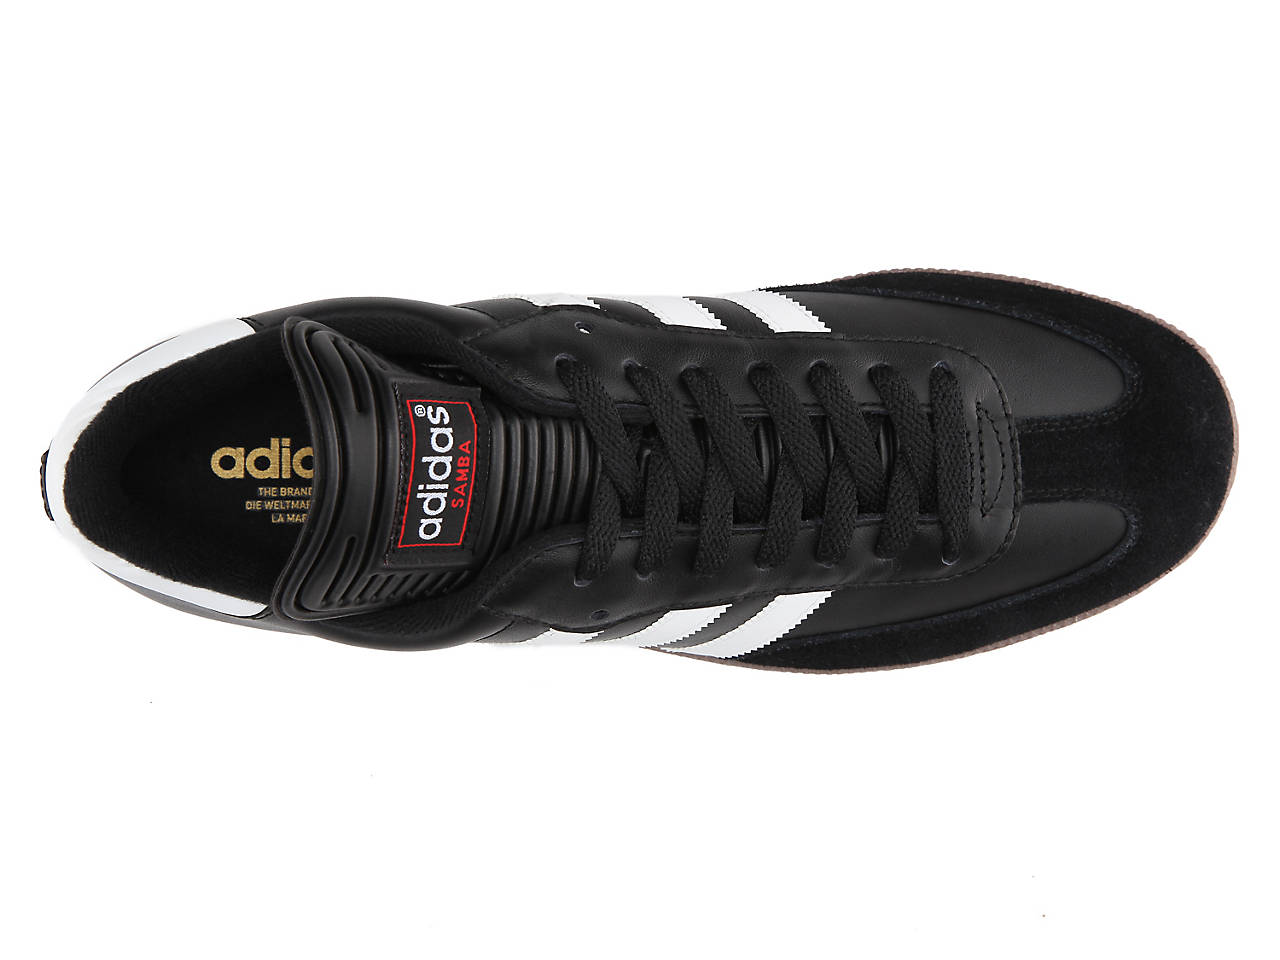 75a83c16bba5 adidas Samba Classic Indoor Soccer Shoe - Men s Men s Shoes